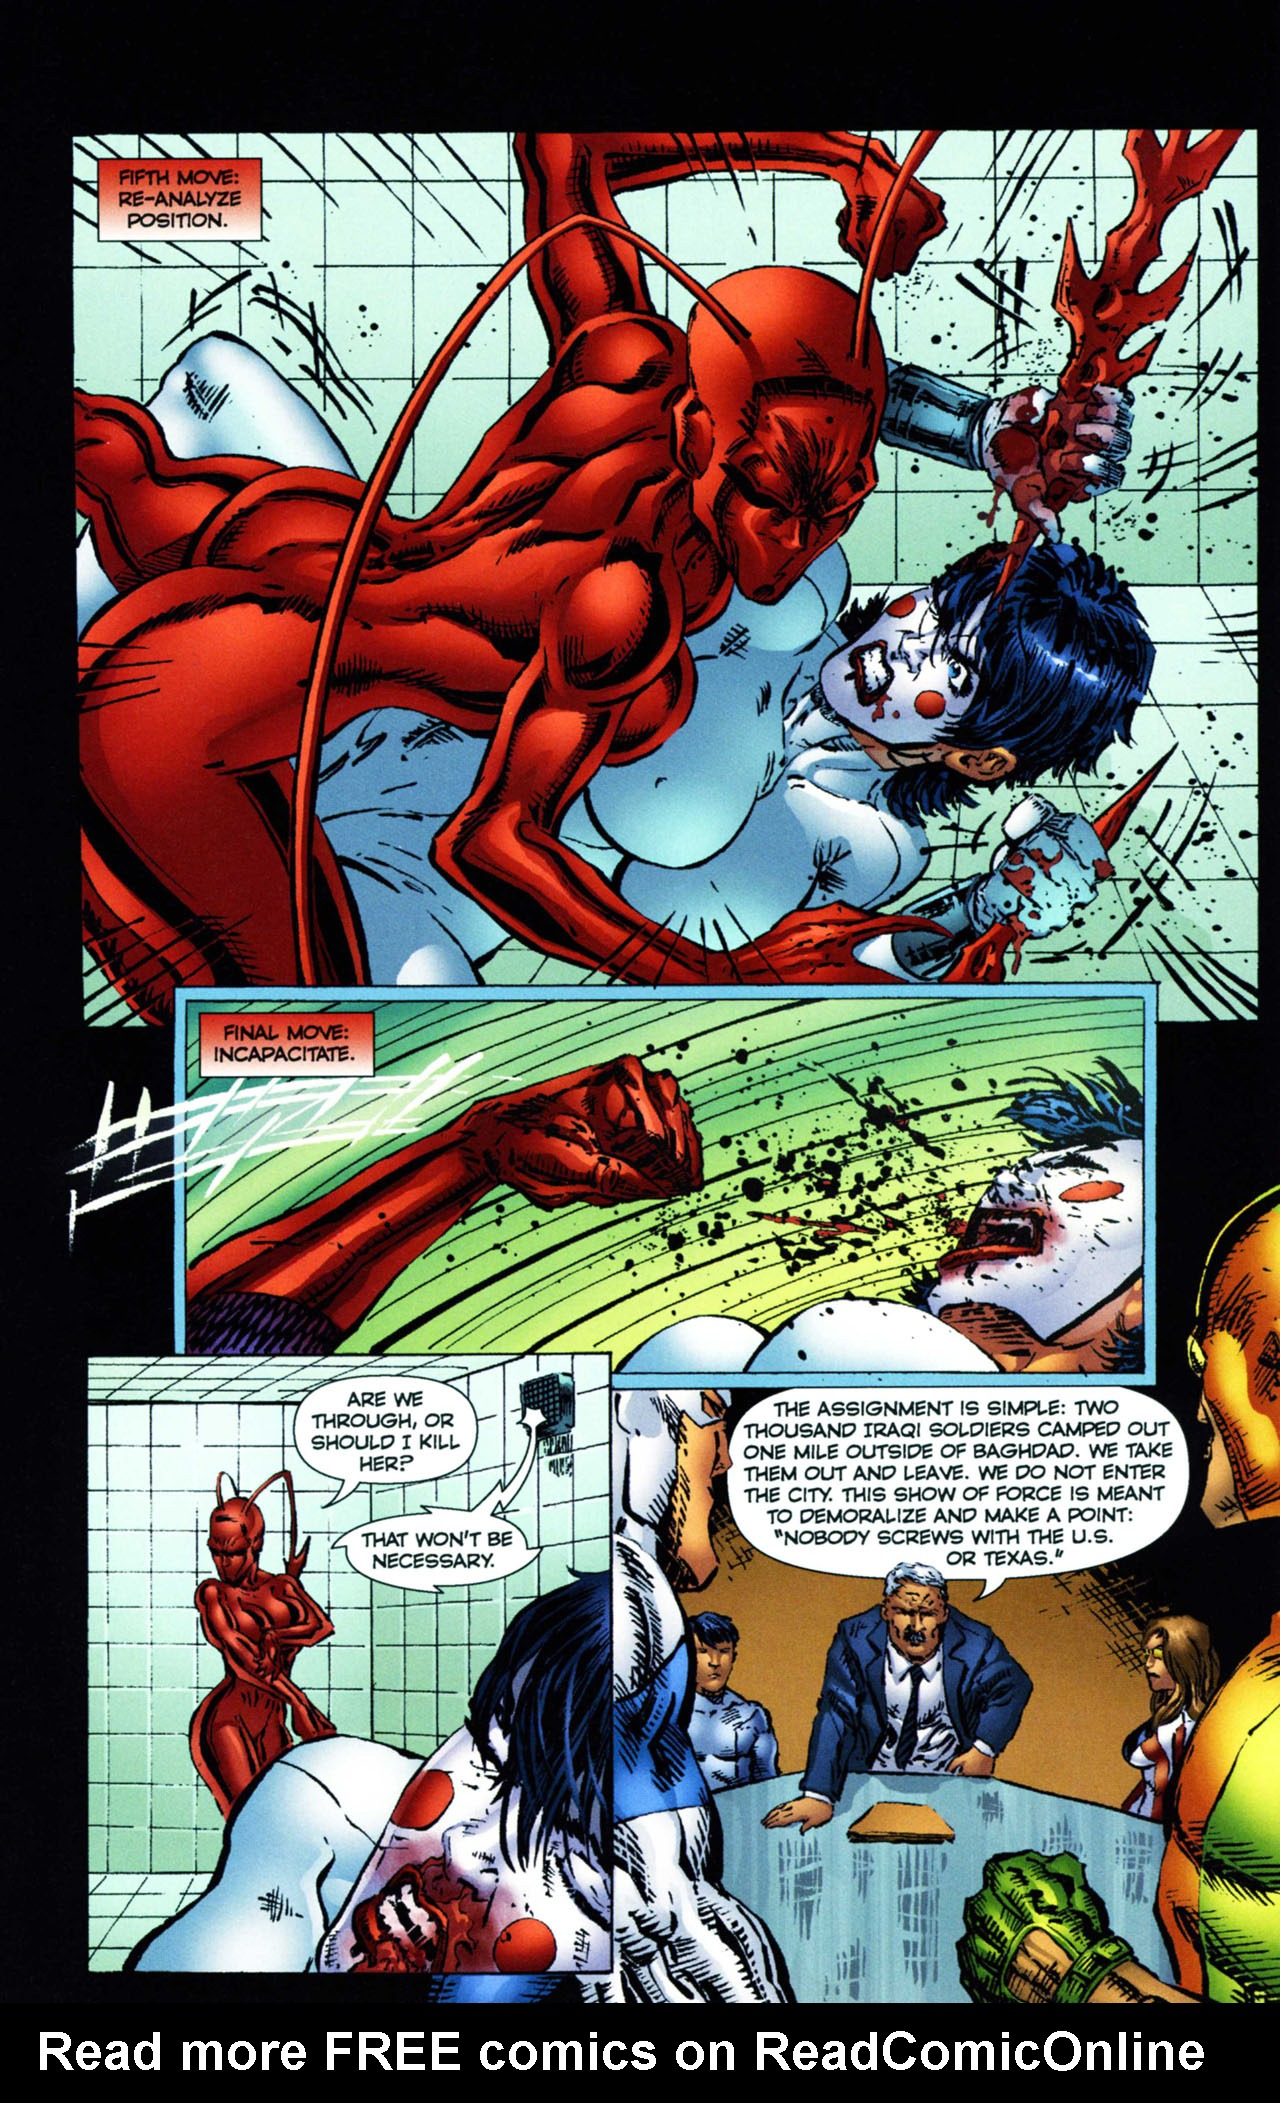 Read online Ant comic -  Issue #11 - 17